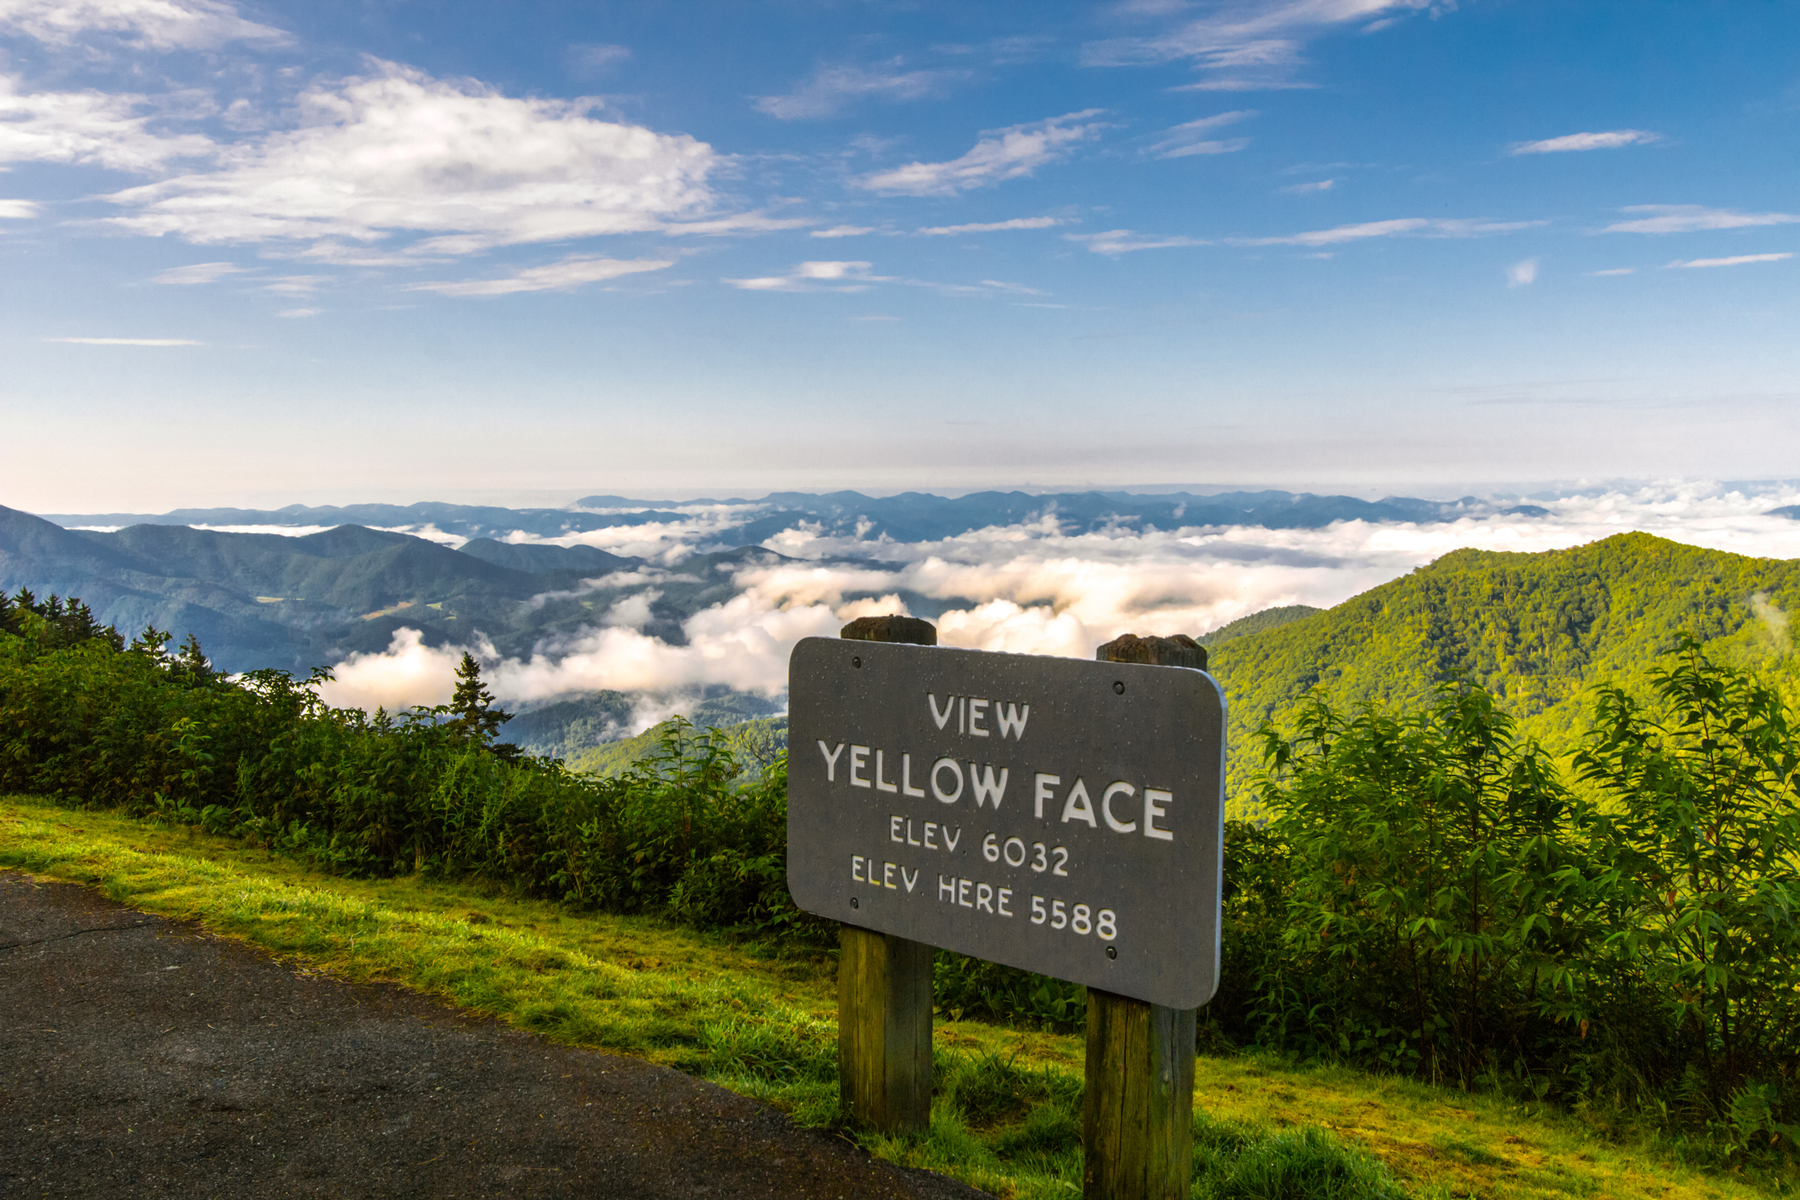 High elevation overlook along the mountains of the Blue Ridge Parkway near Asheville, North Carolina.